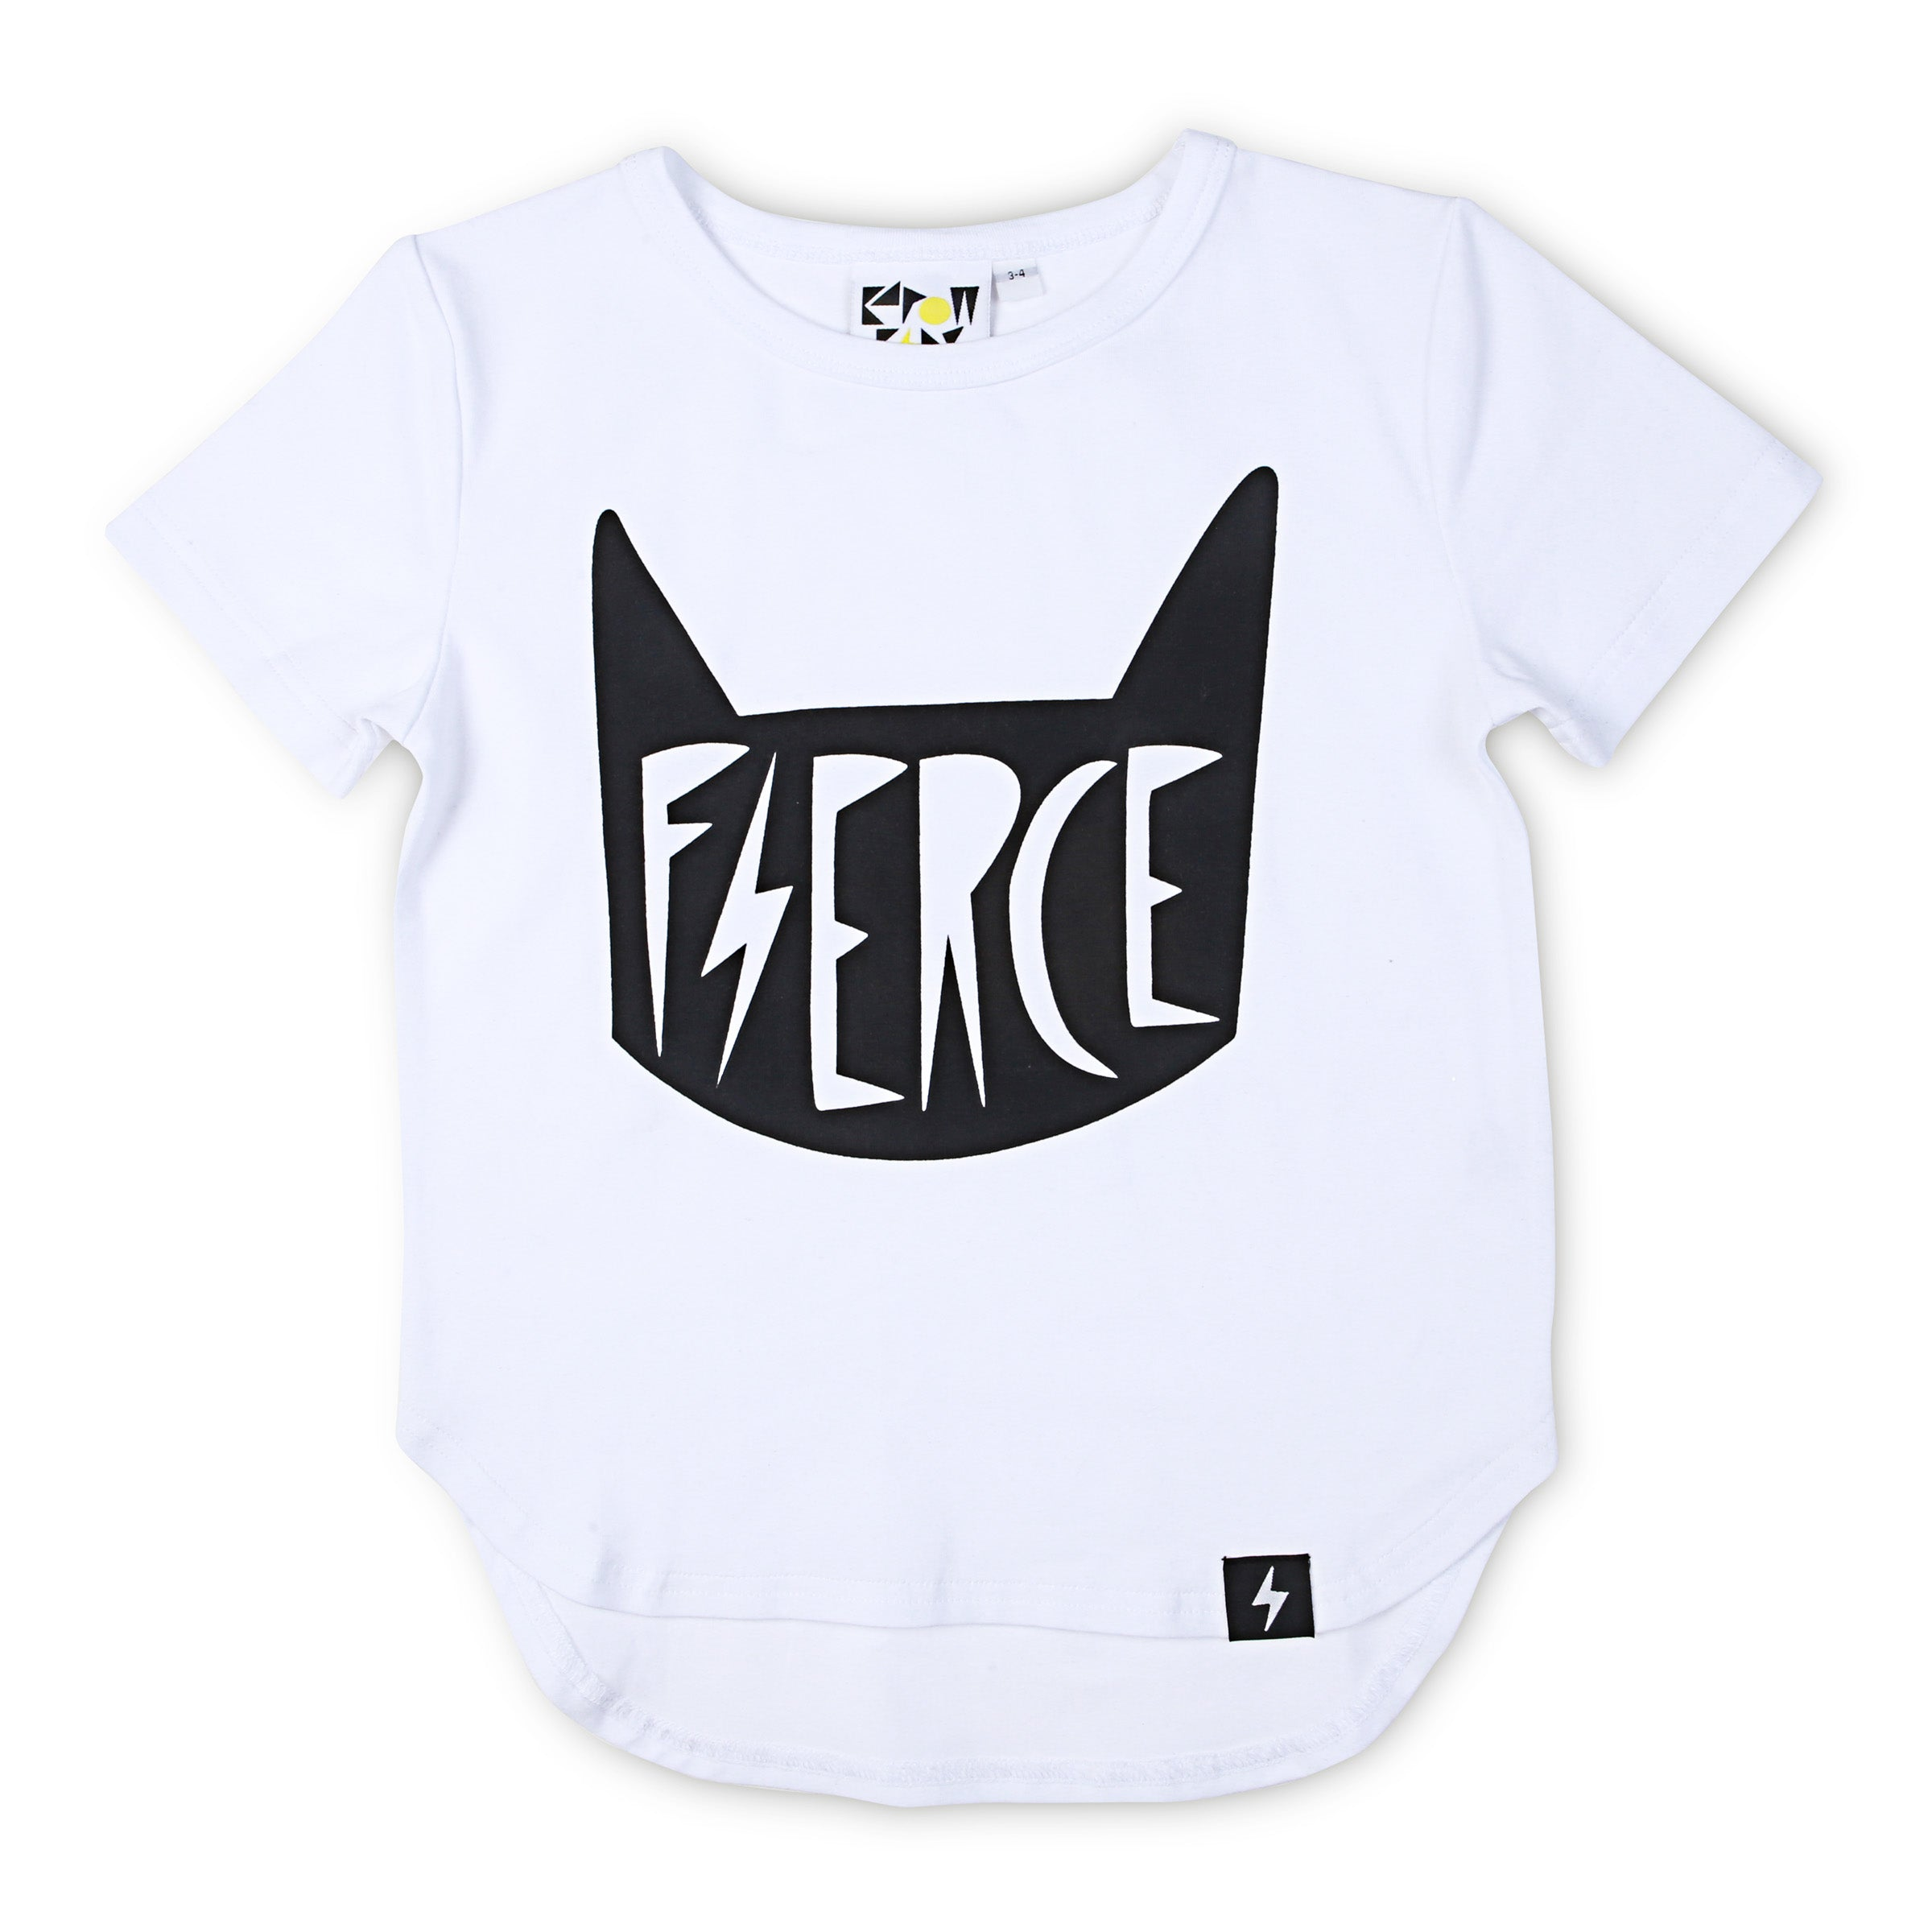 60% OFF Kapow Fierce Drop Back T-shirt - White SIZE 0-3M & 2